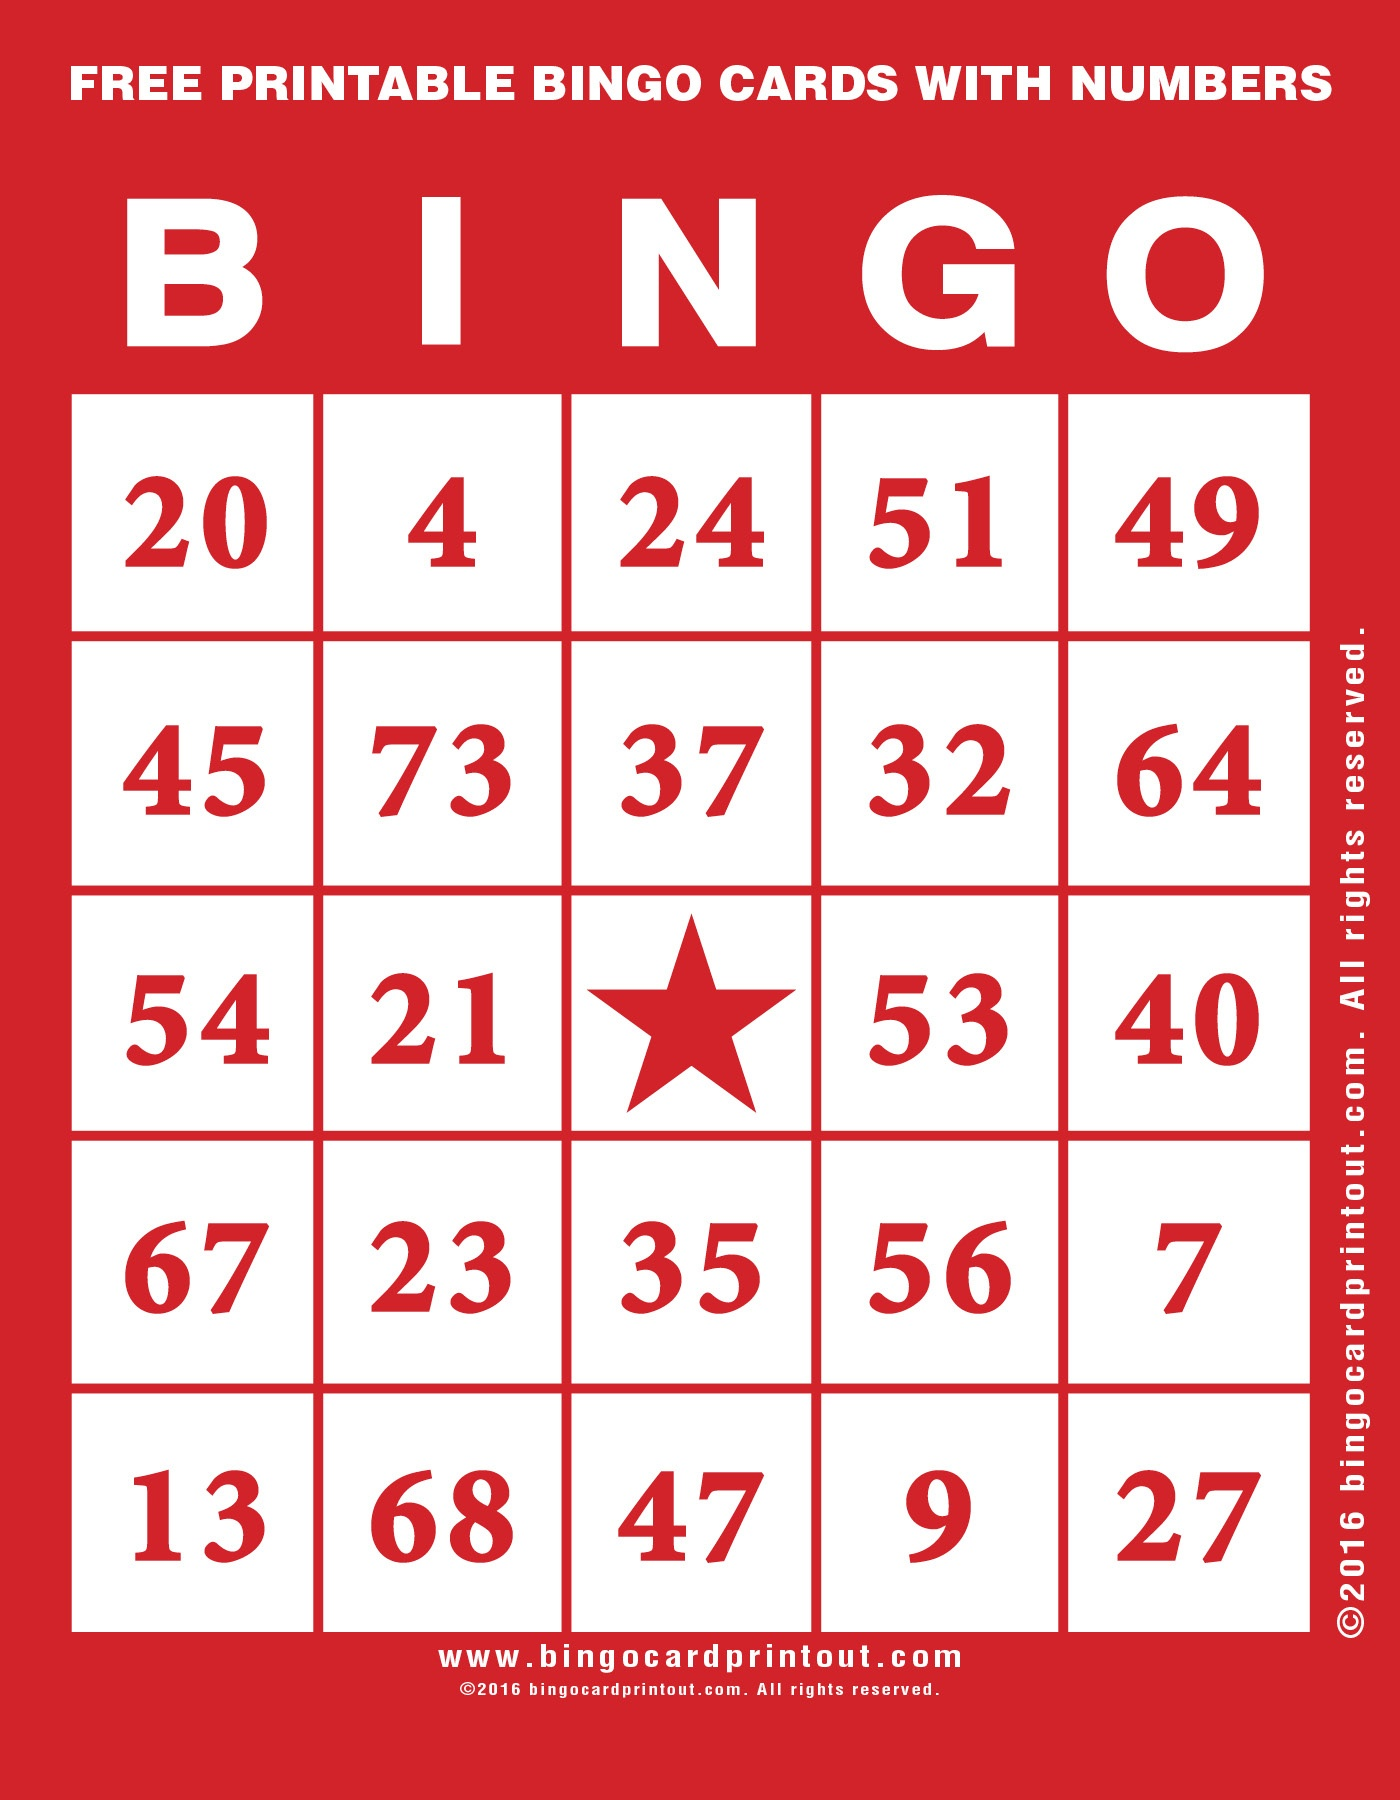 Free Printable Bingo Cards With Numbers - Bingocardprintout - Free Printable Bingo Cards With Numbers